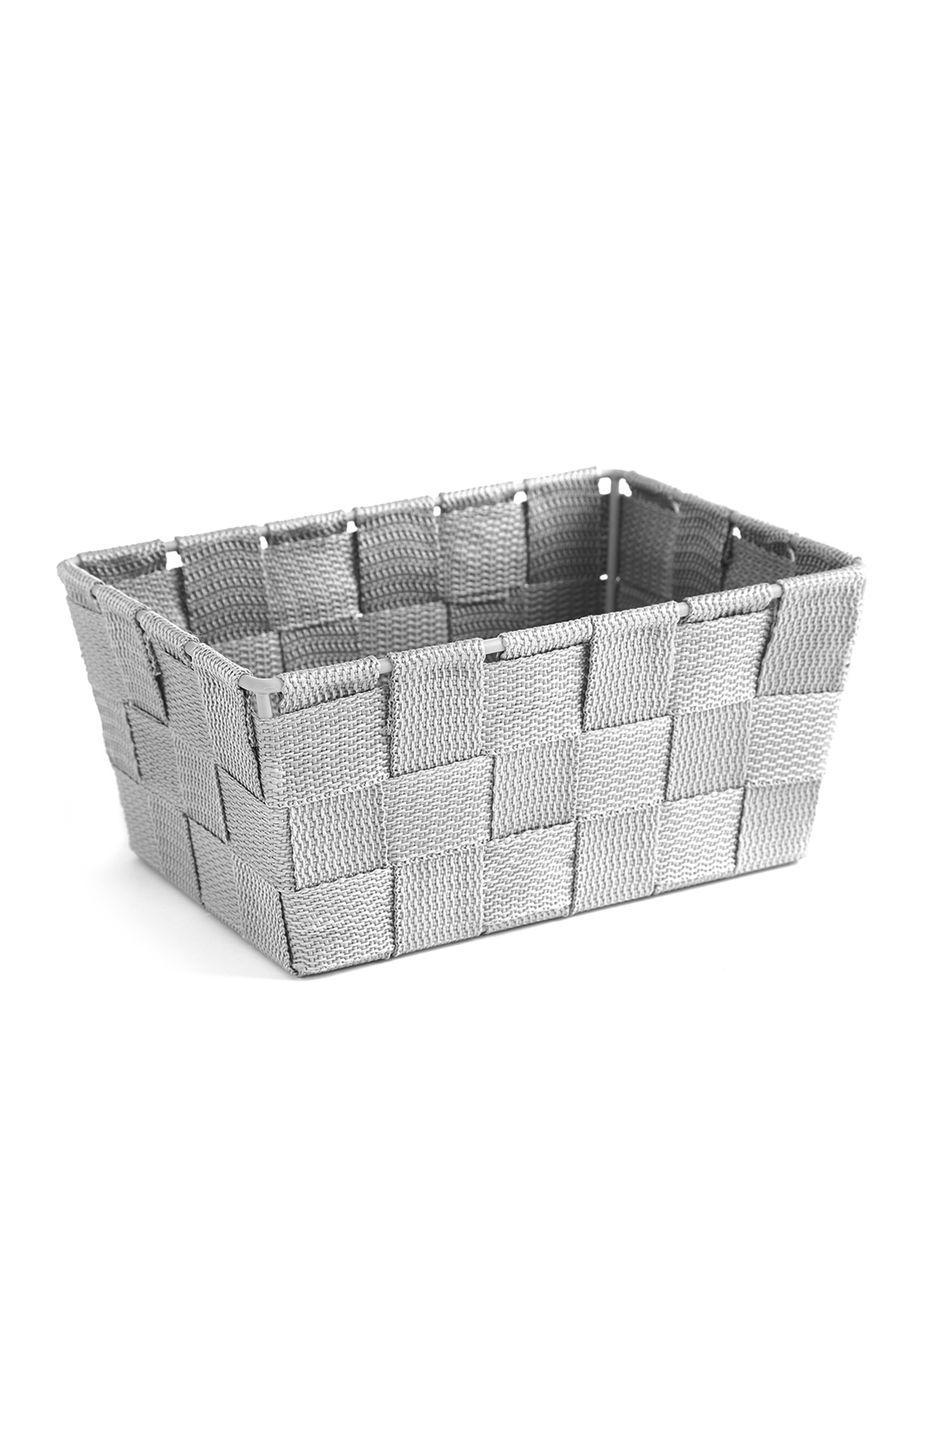 <p>Woven basket in grey, price unknown </p>